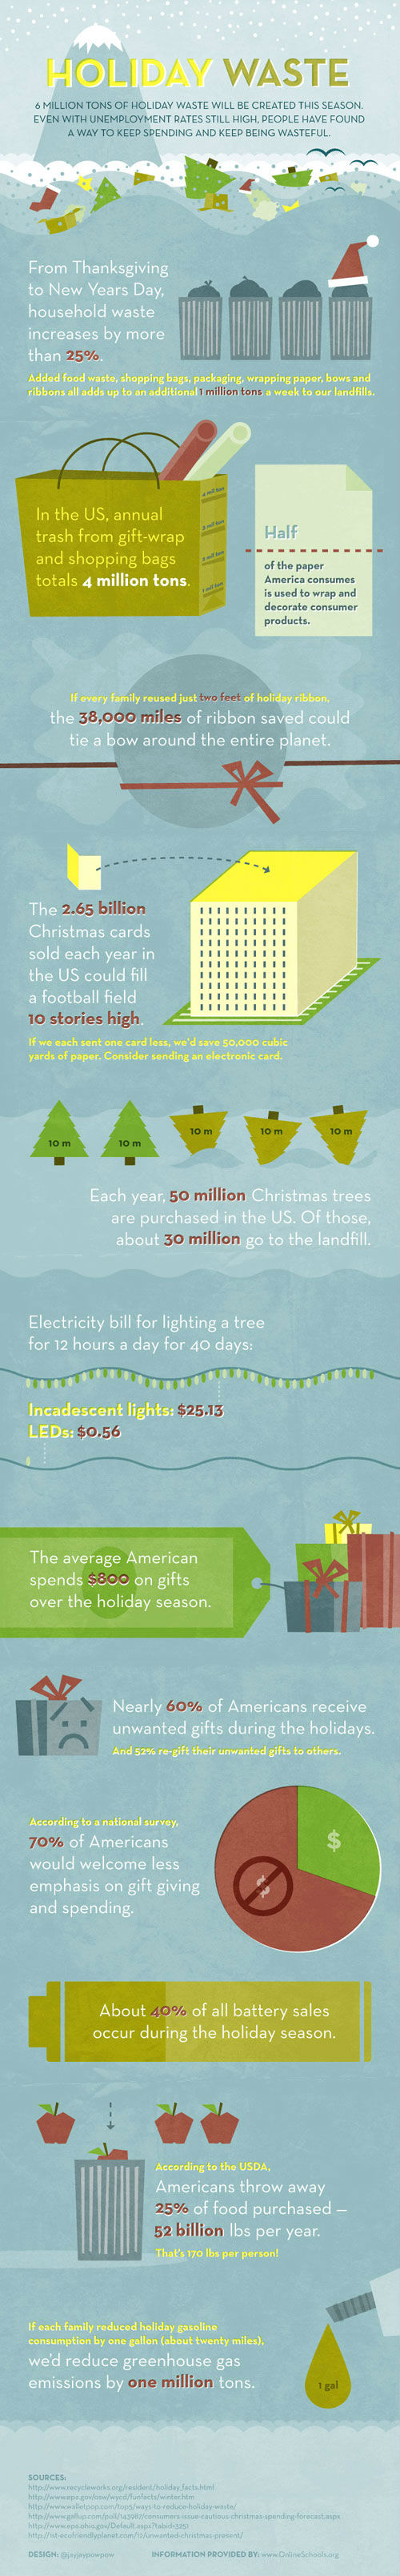 Holiday Waste: 6 Million Extra Tons to Landfills